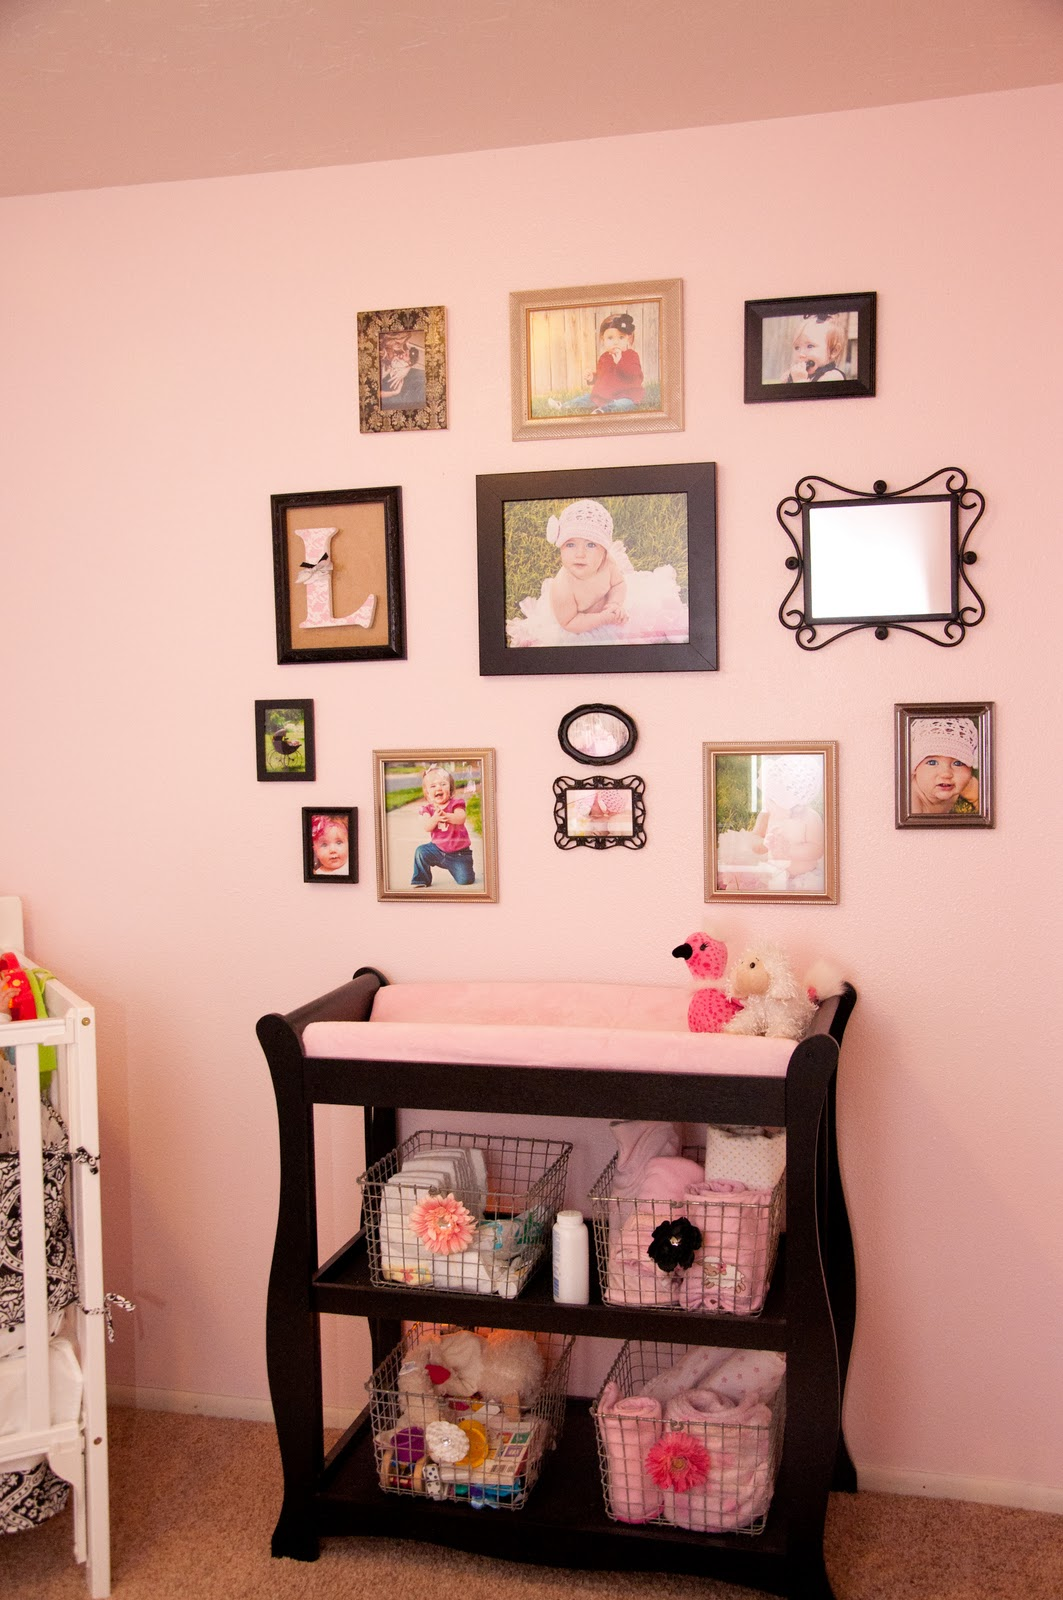 The Color On Her Walls Is Called U201cPink Airu201d. It Is The Most Perfect Pink  Color, No Red Or Orange Tones To It, Not Bubblegum Or Barbie Pink, Just  Really The ...